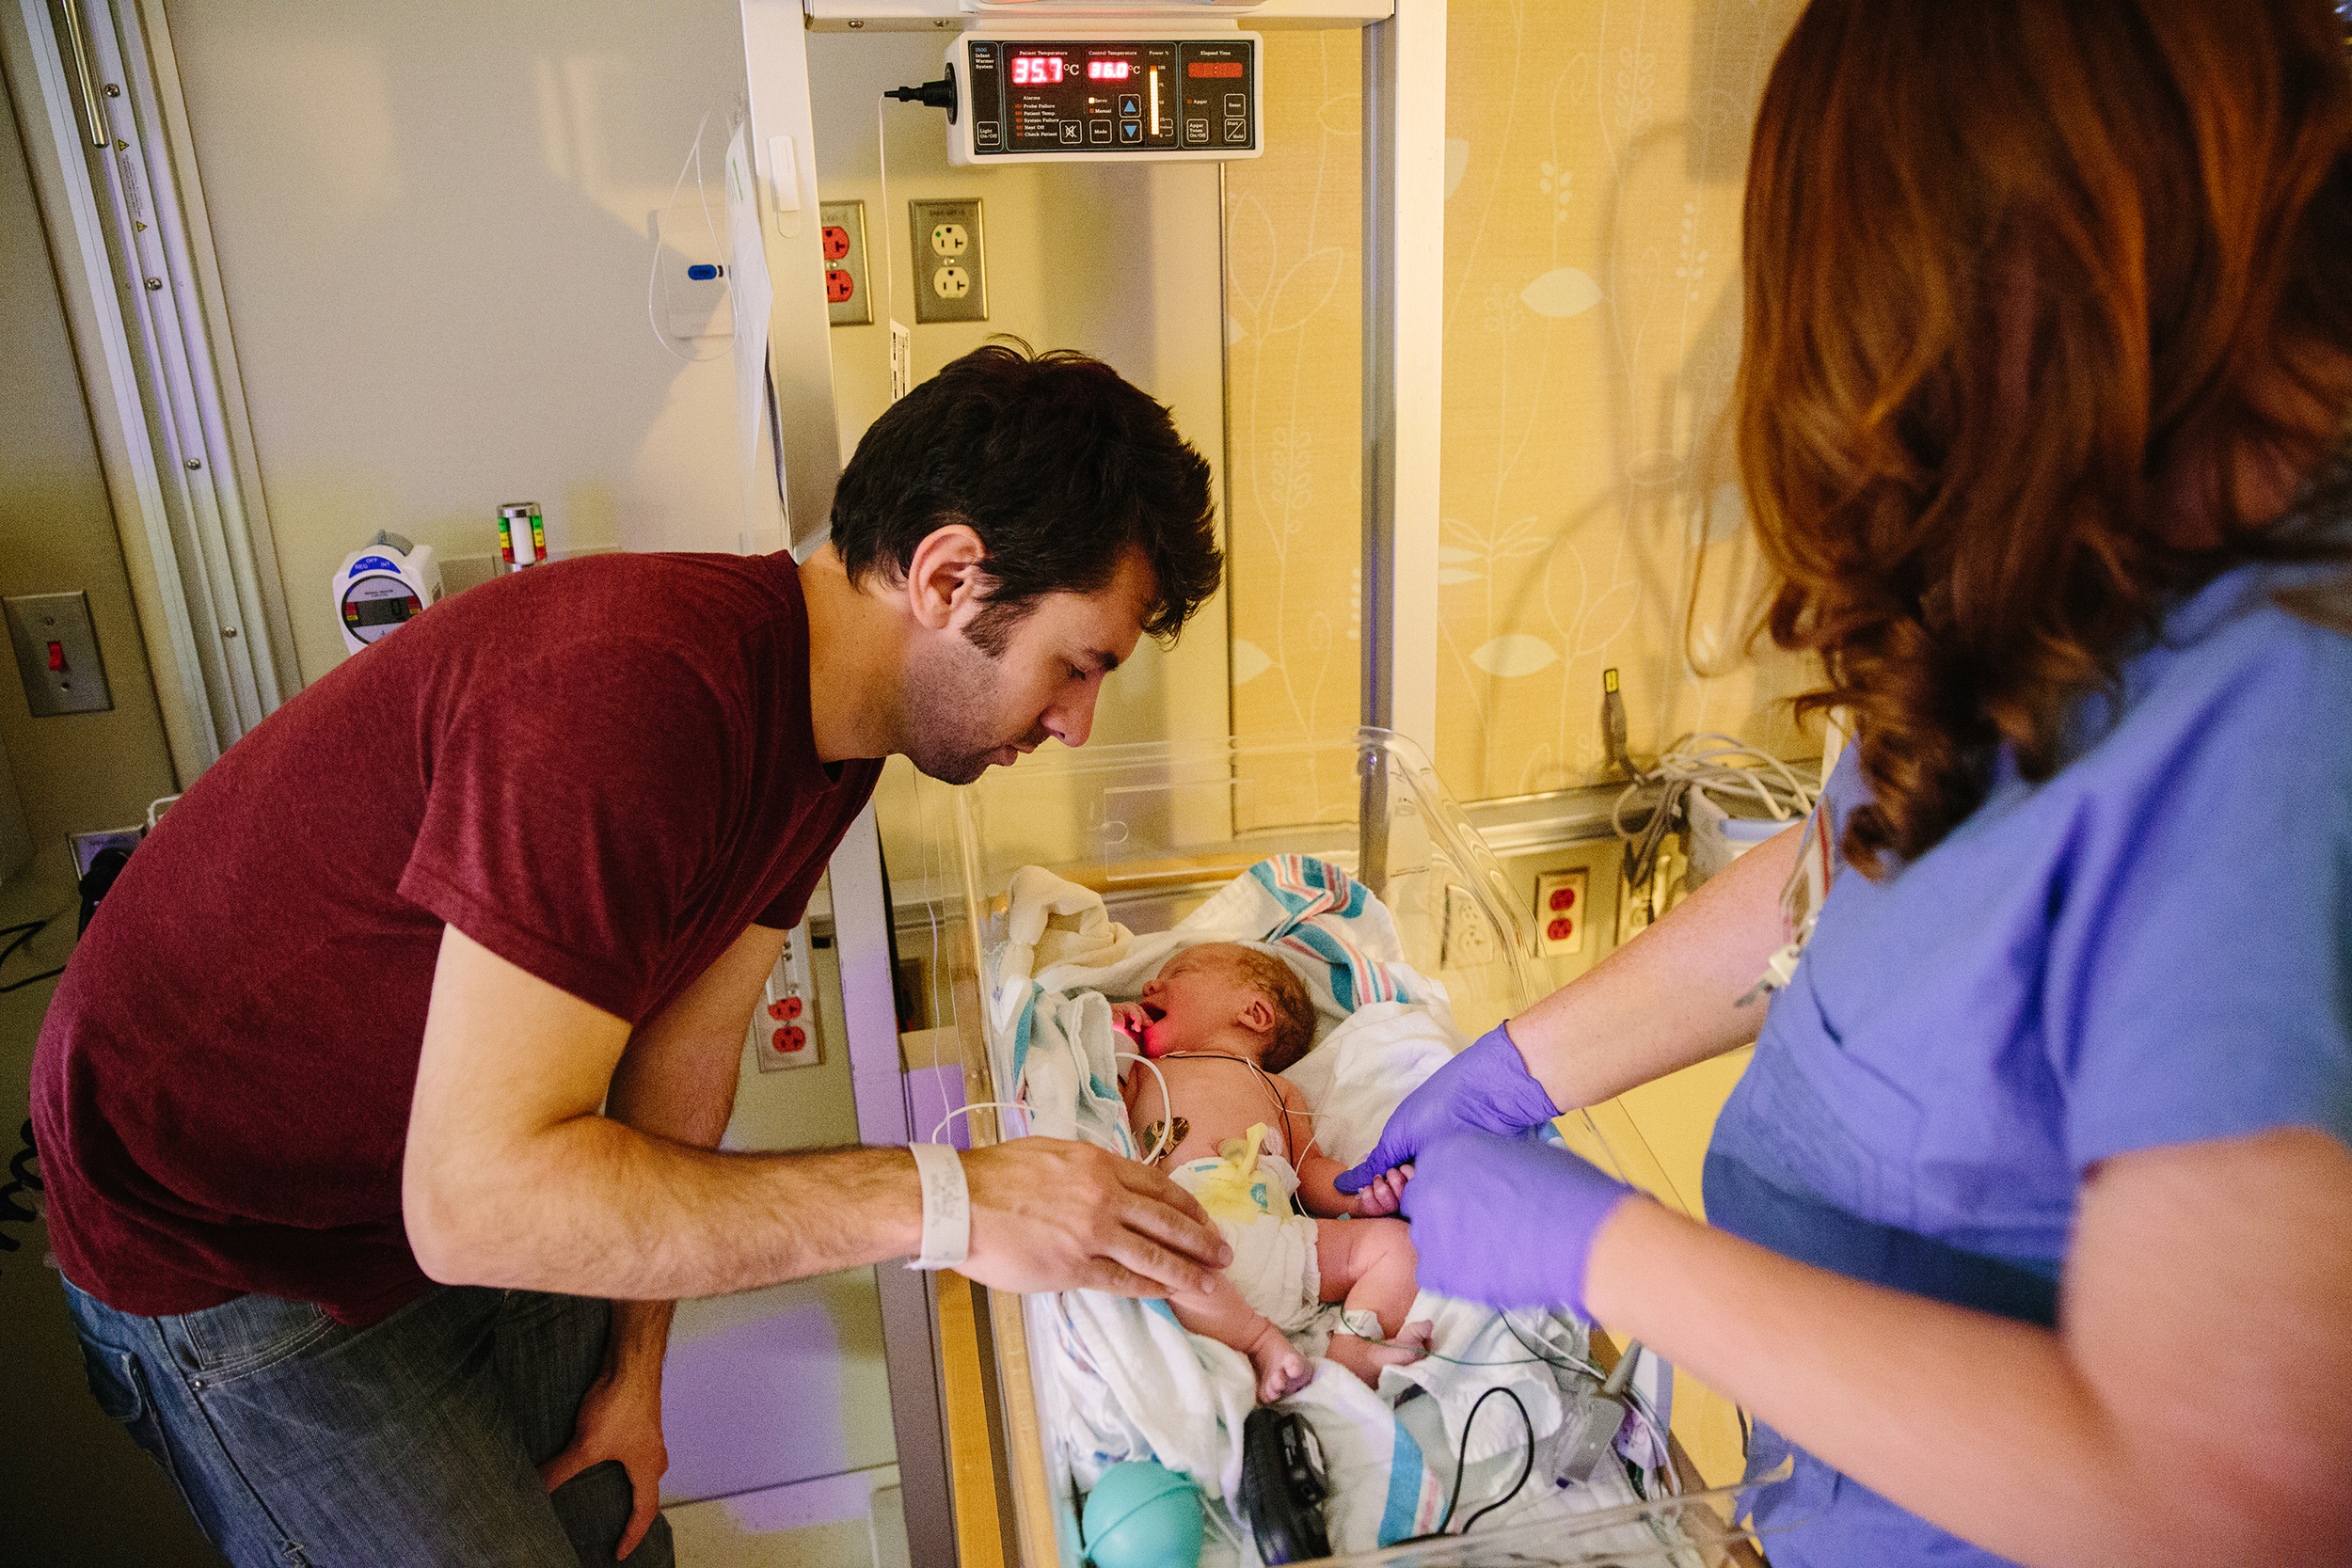 Scott was allowed to bring one guest at a time down to the ICU, so I got to make a quick visit as he checked in on the baby, who was having some difficulty breathing but improving every minute.